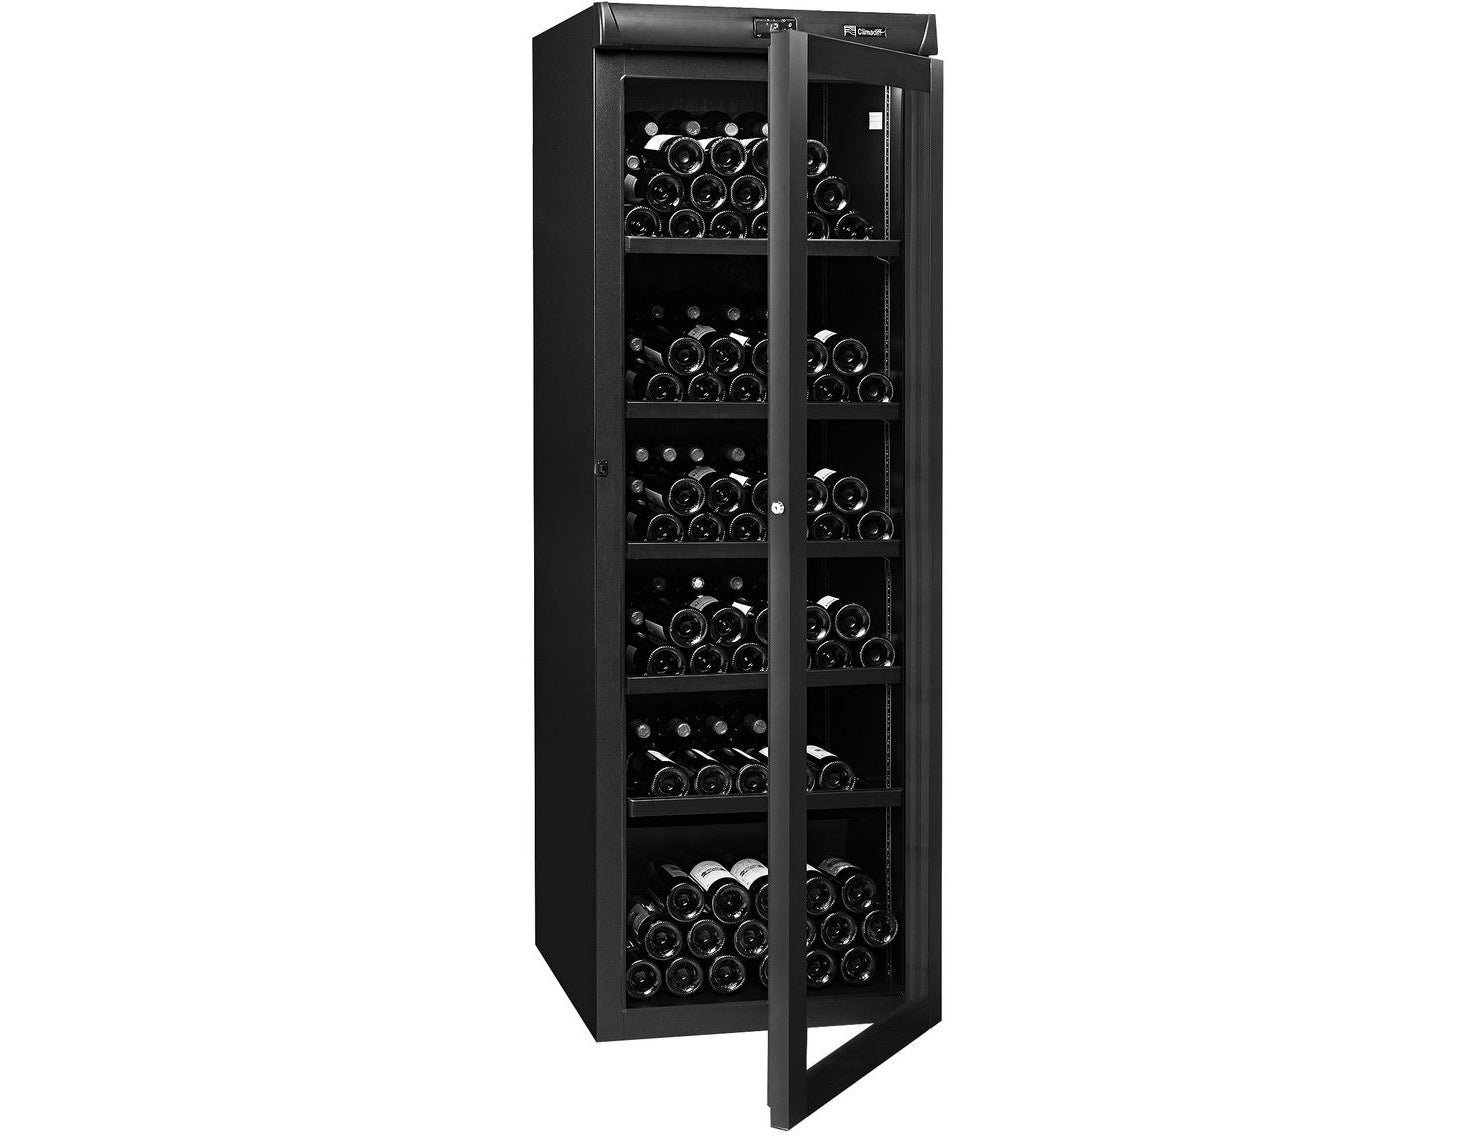 Climadiff CVV265B - Single Zone - Ageing Wine Cabinet - 265 Bottles - Freestanding - 620mm Wide